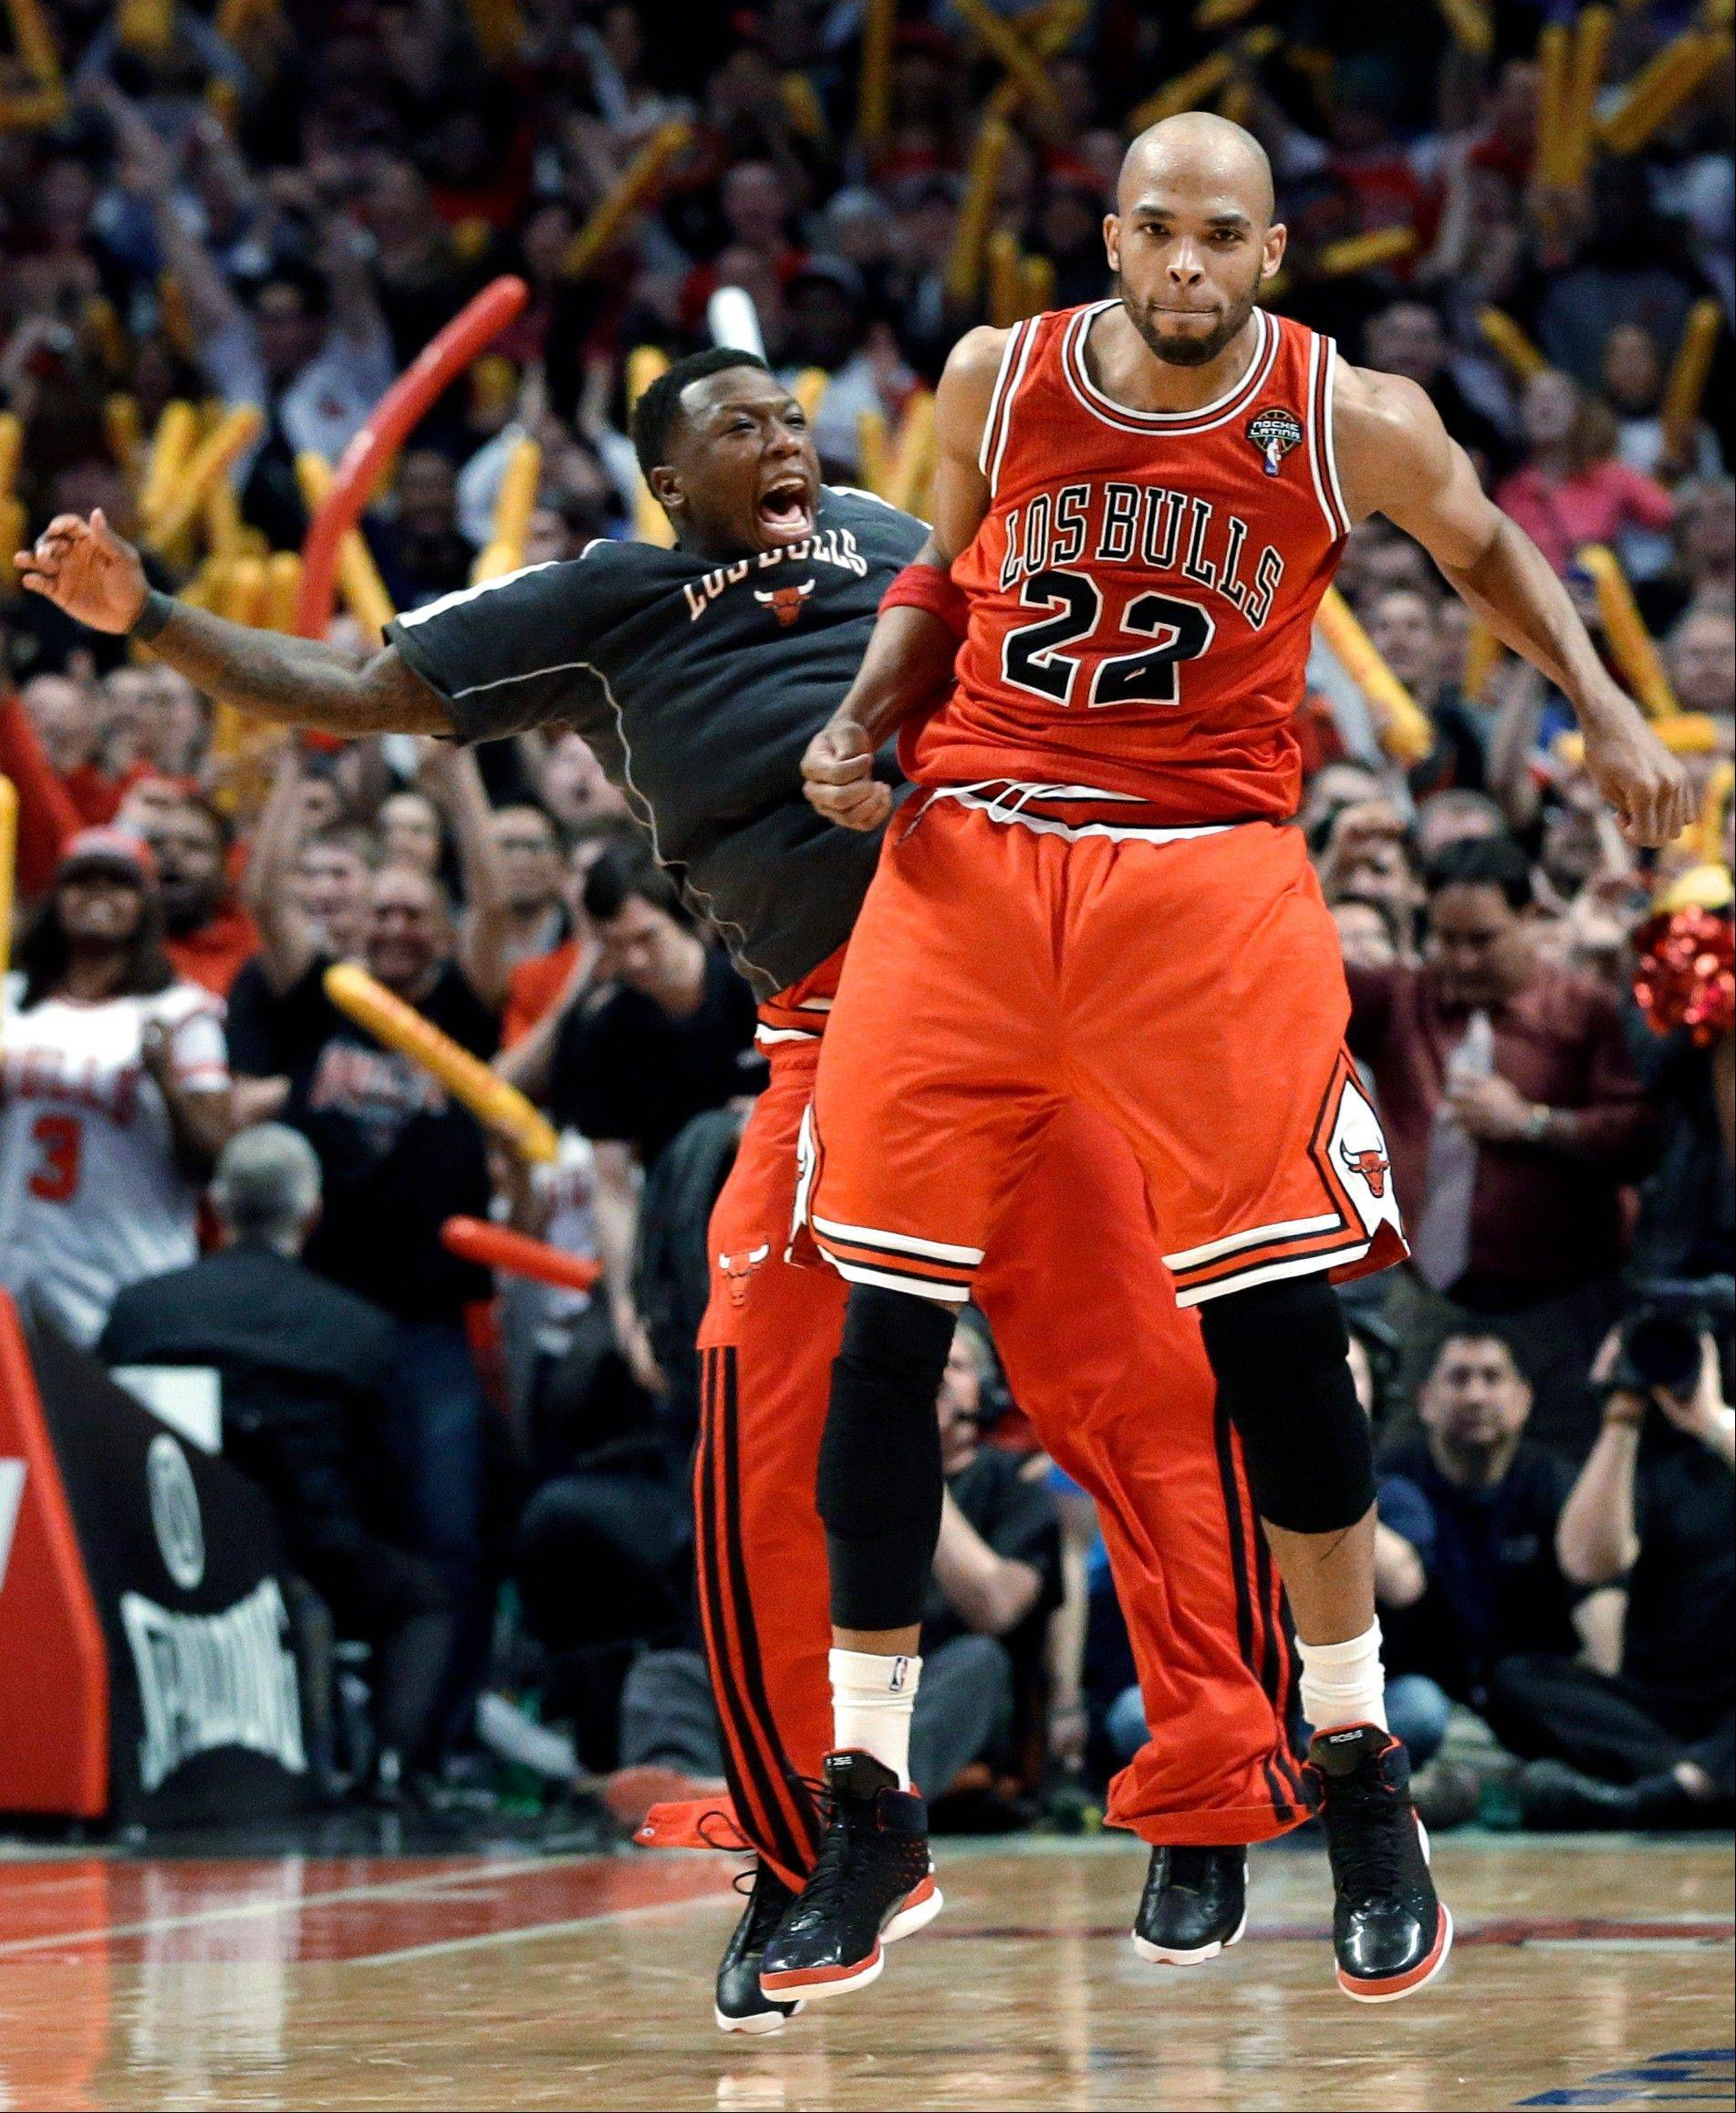 Bulls forward Taj Gibson (22) celebrates with Nate Robinson after scoring a basket during the second half of an NBA basketball game against the Miami Heat in Chicago on Wednesday, March 27, 2013. The Bulls won 101-97, ending the Heat�s 27-game winning streak.